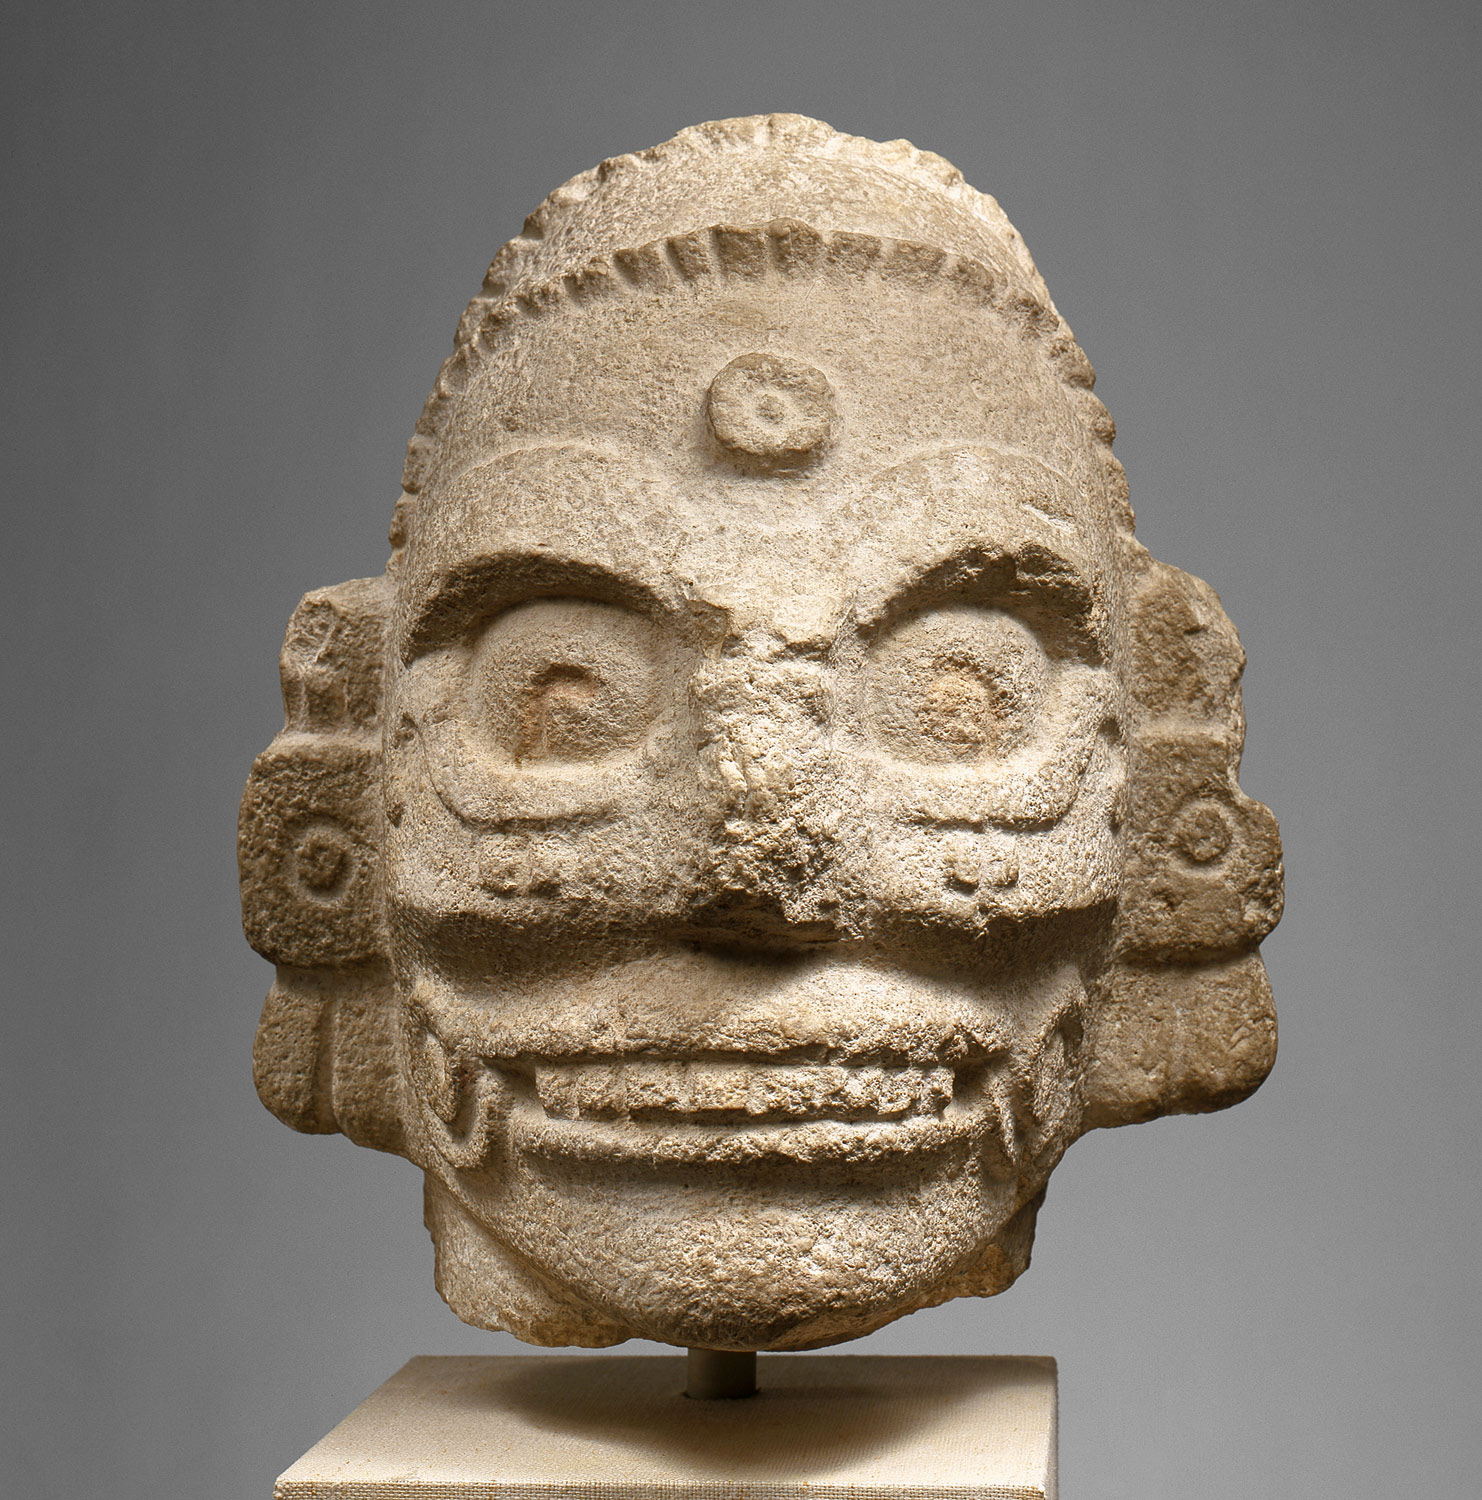 Head of the Rain God - Chaac Mul